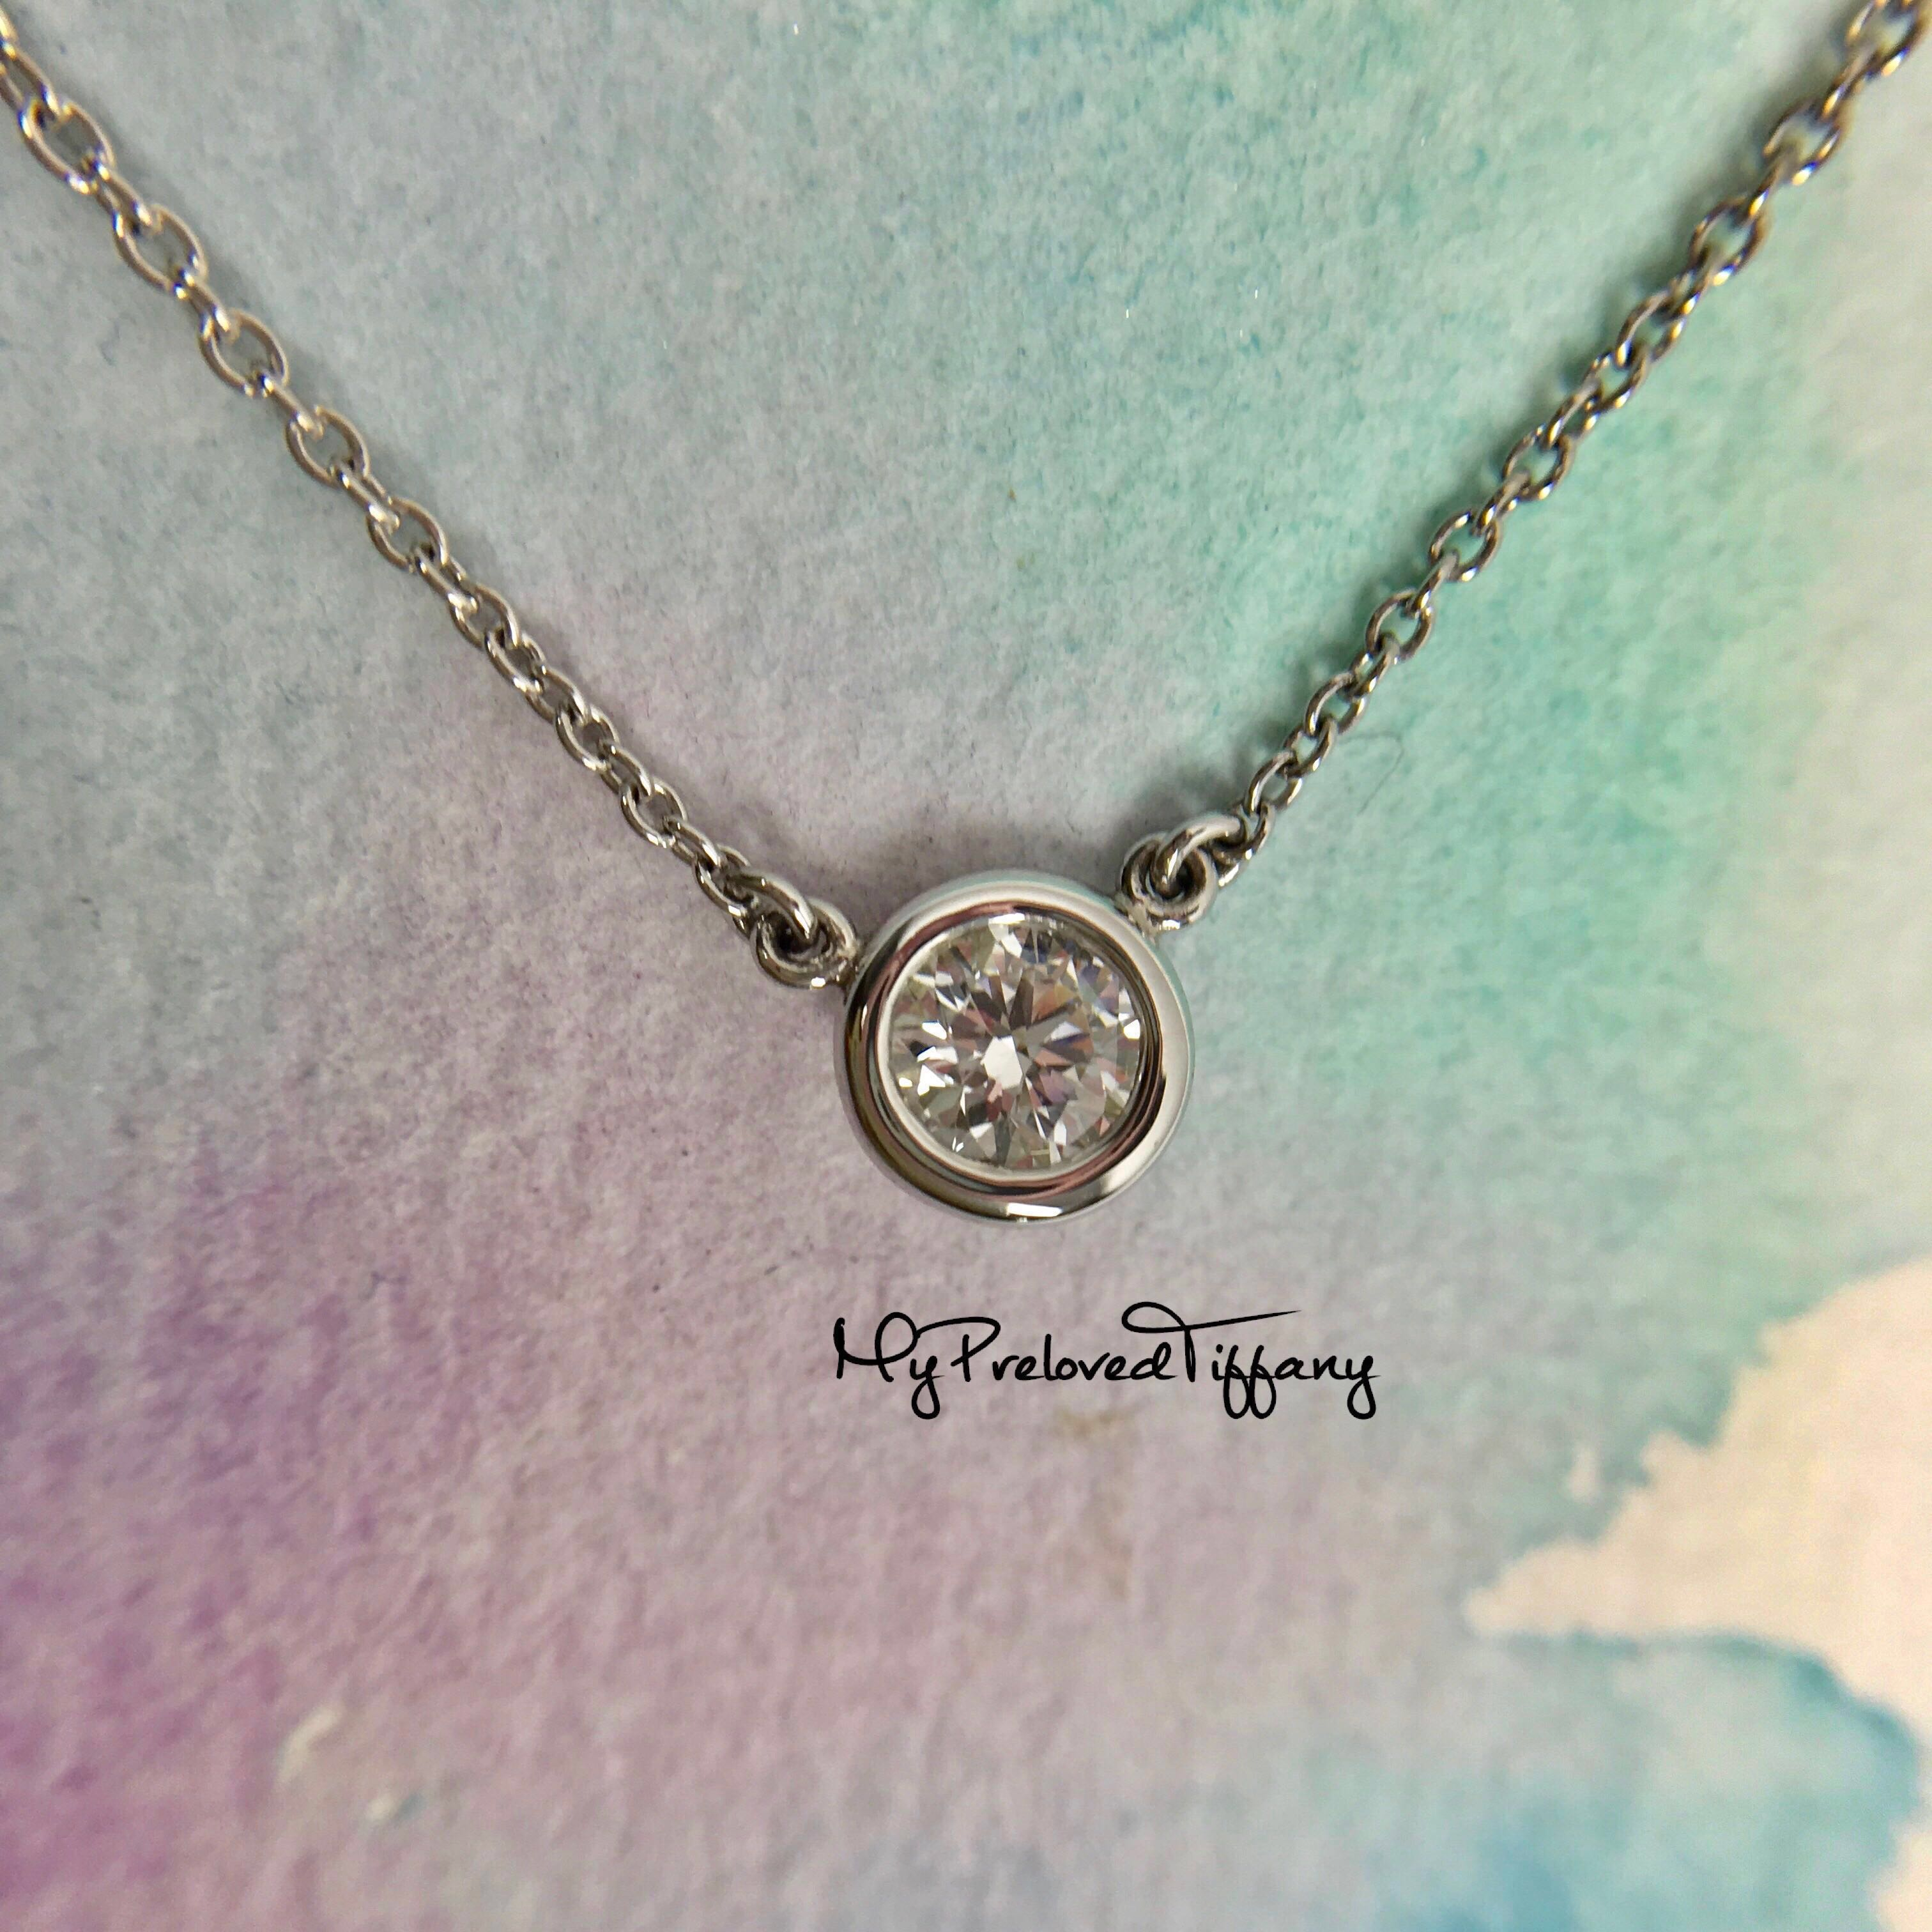 f1b708f29 Tiffany & Co. 0.30ct Diamond By The Yard Necklace Pt950 Platinum REMADE,  Women's Fashion, Jewellery, Necklaces on Carousell